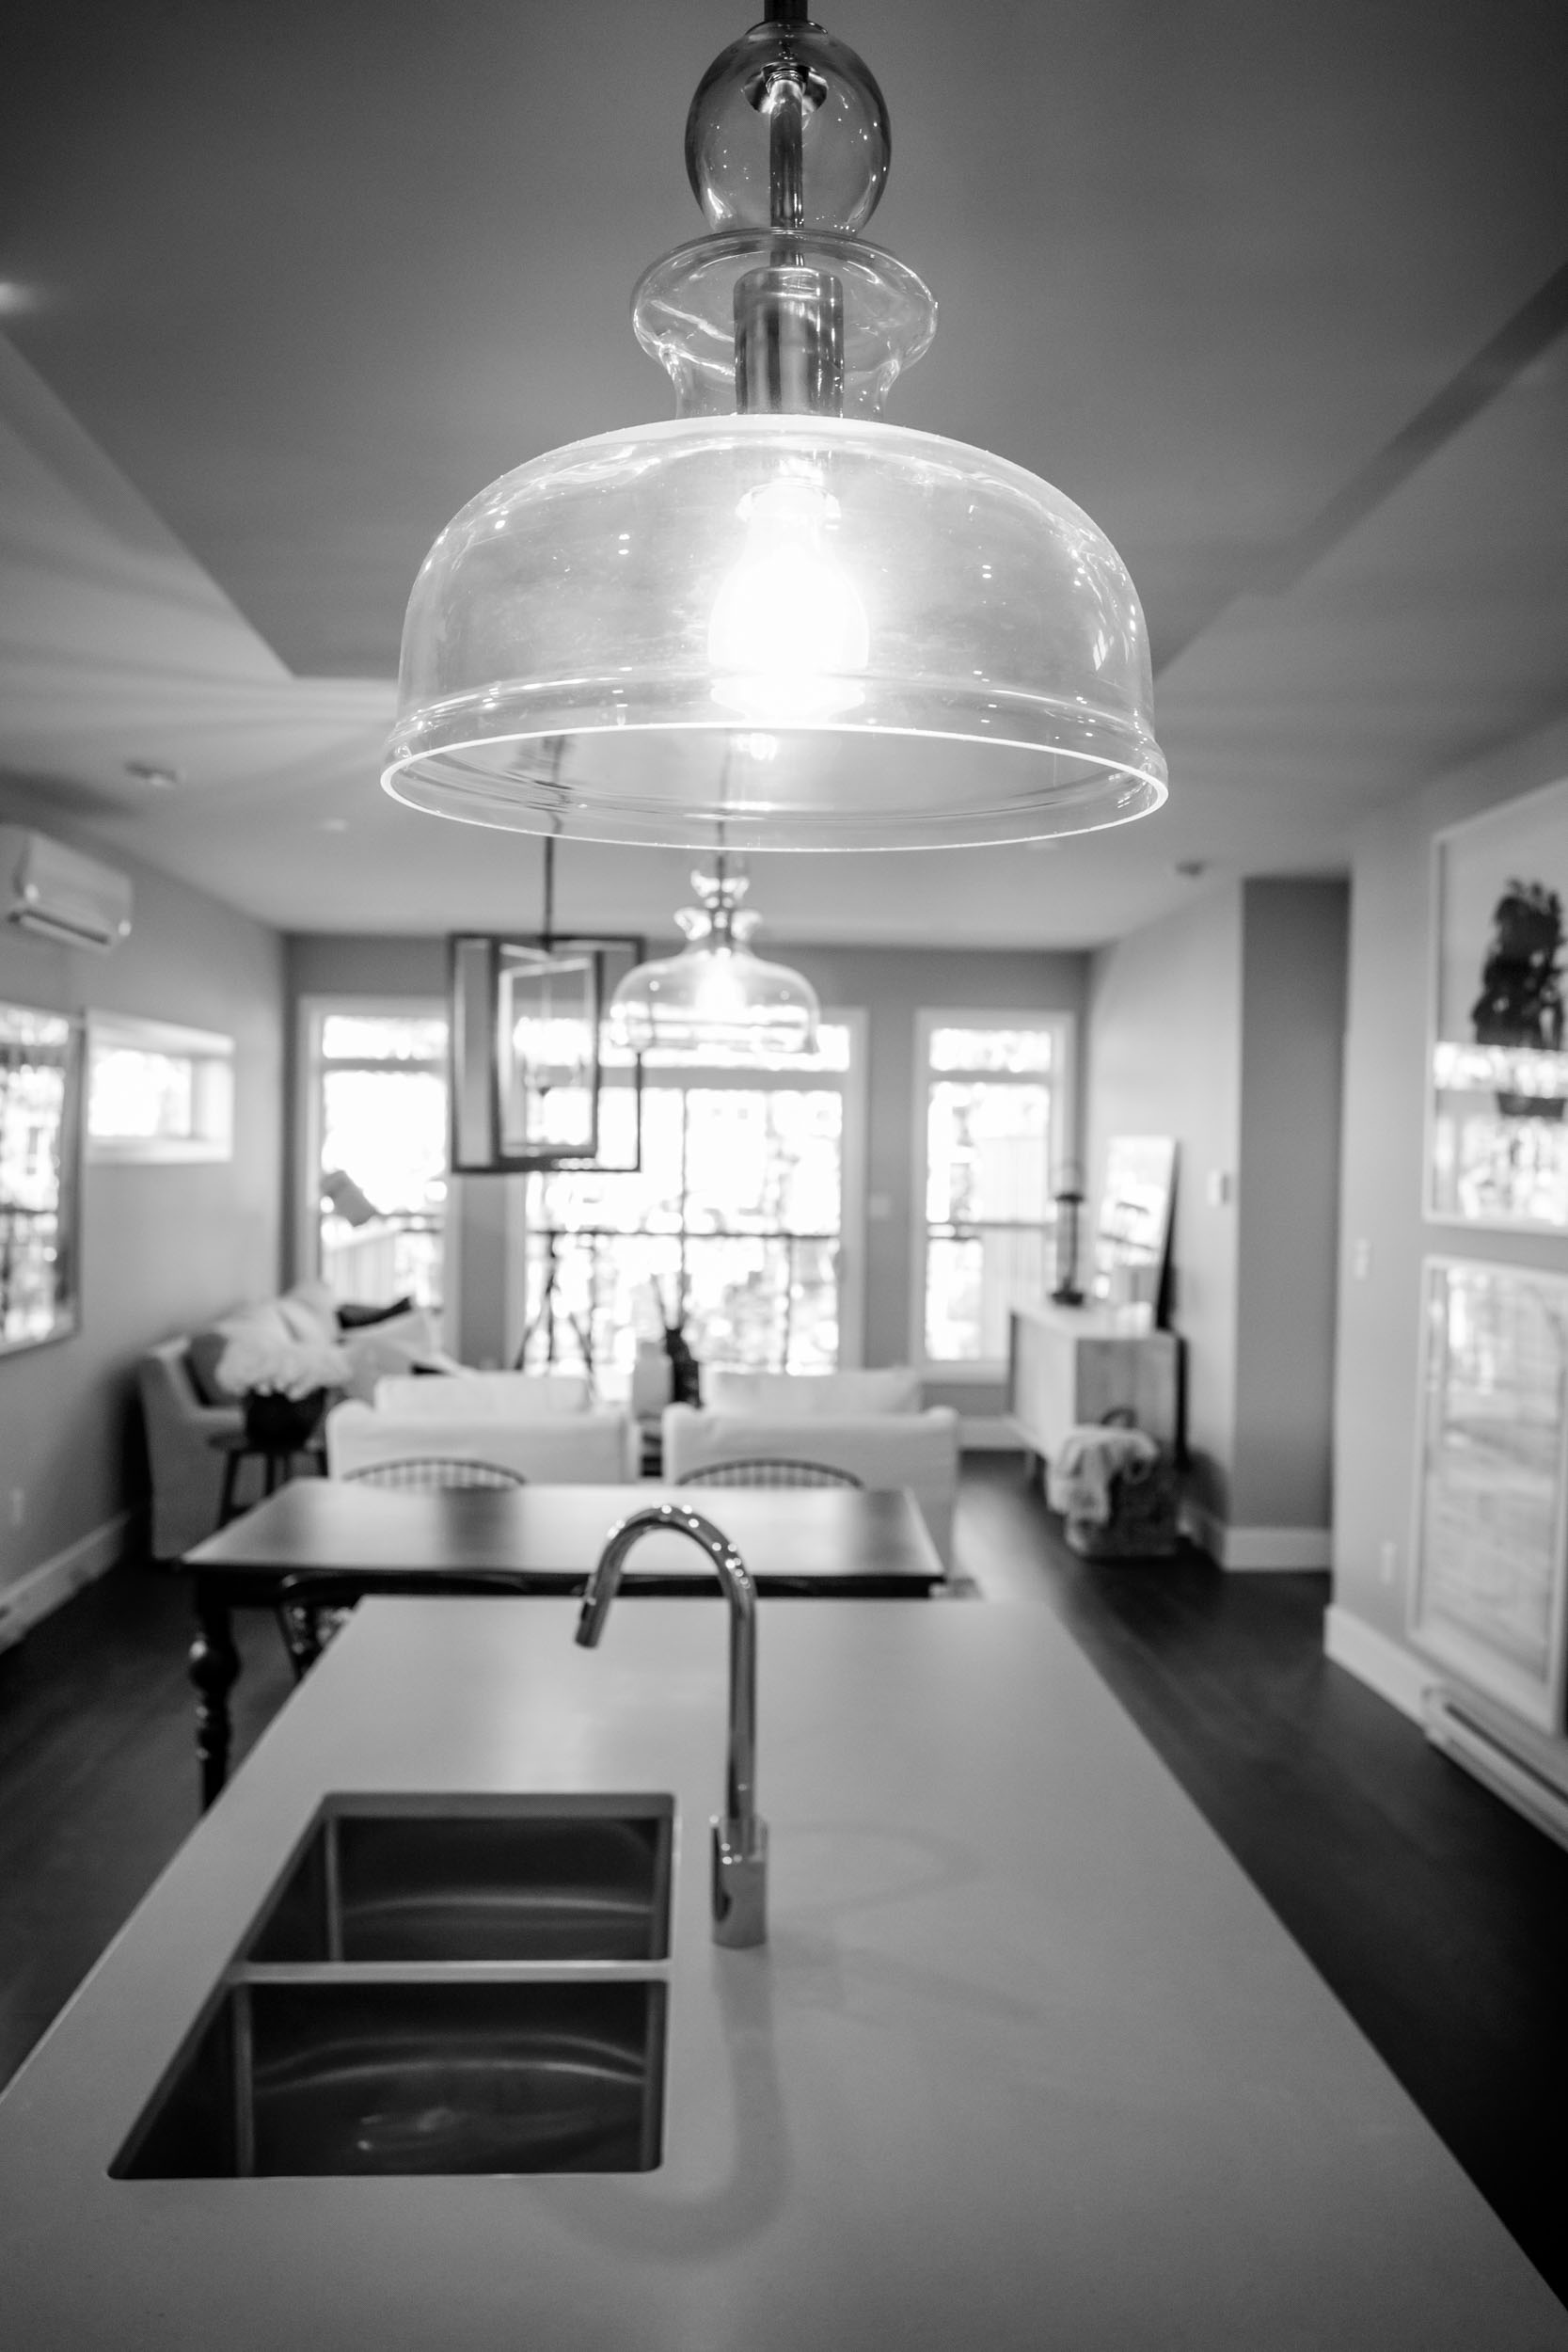 Henderson Electrical carefully considers the smallest design details - for example the careful placement of pendant lighting so no one bumps their head.